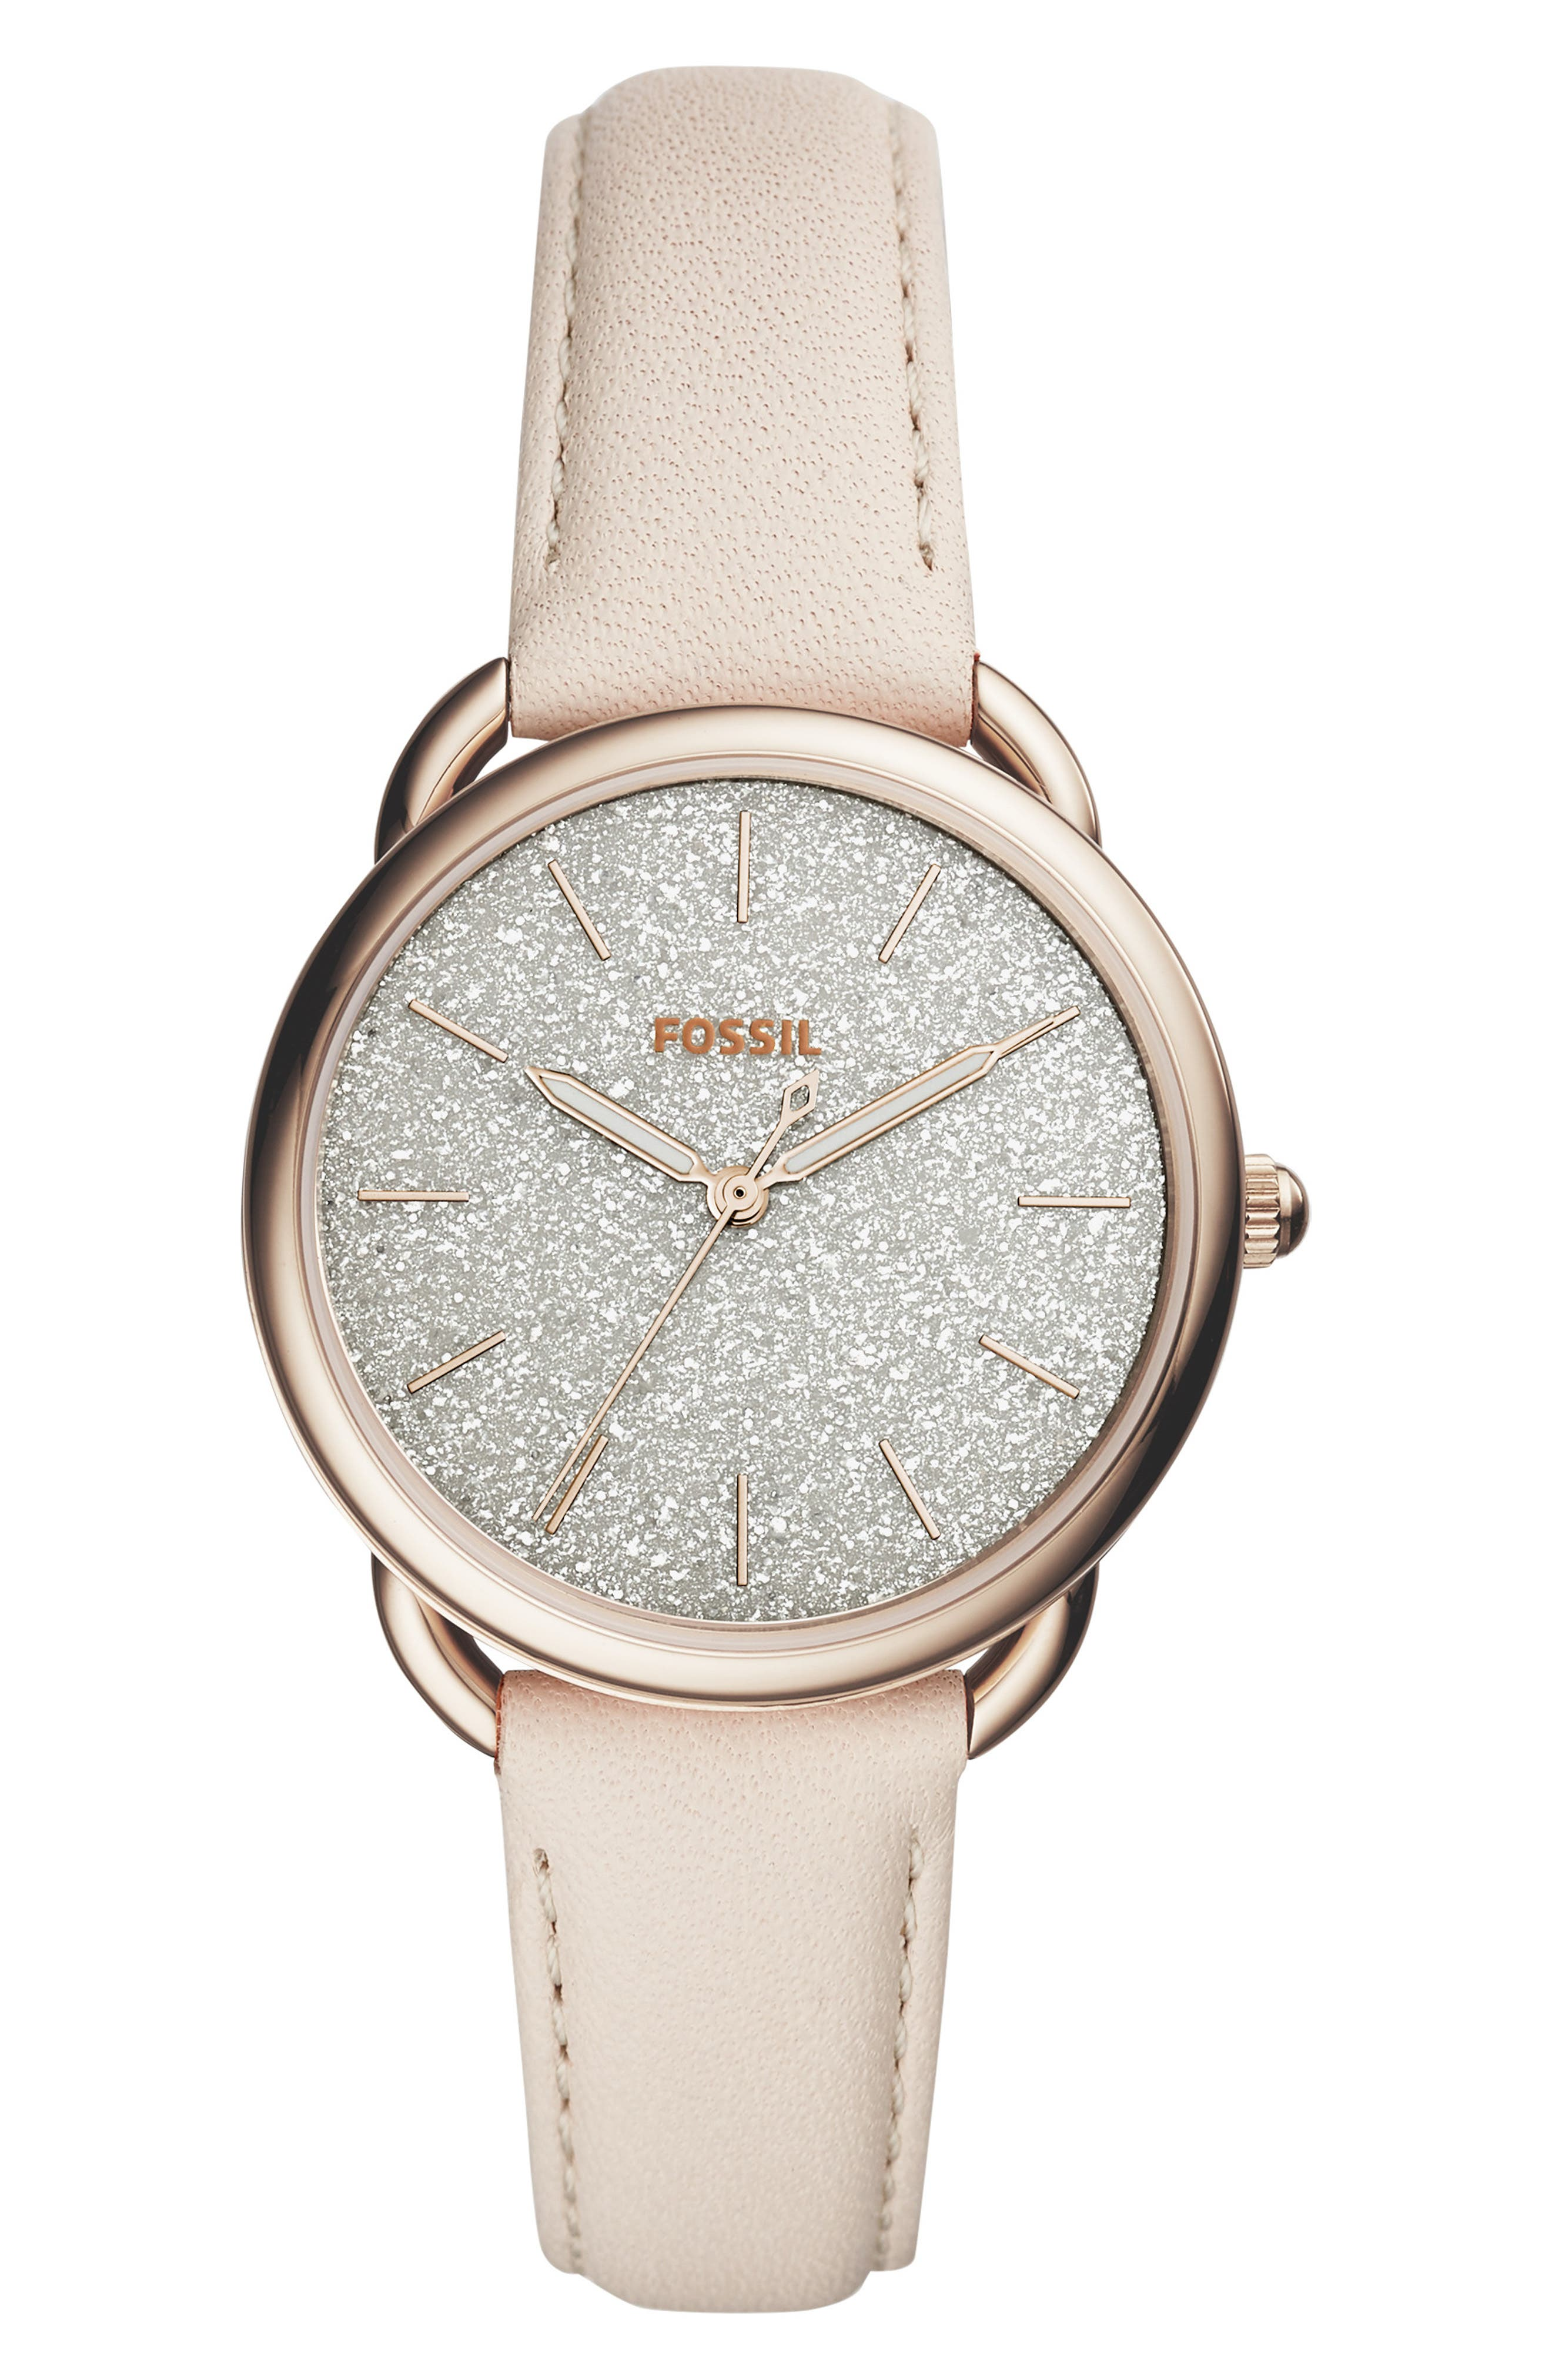 FOSSIL Women'S Tailor Winter White Leather Strap Watch 35Mm in Rose